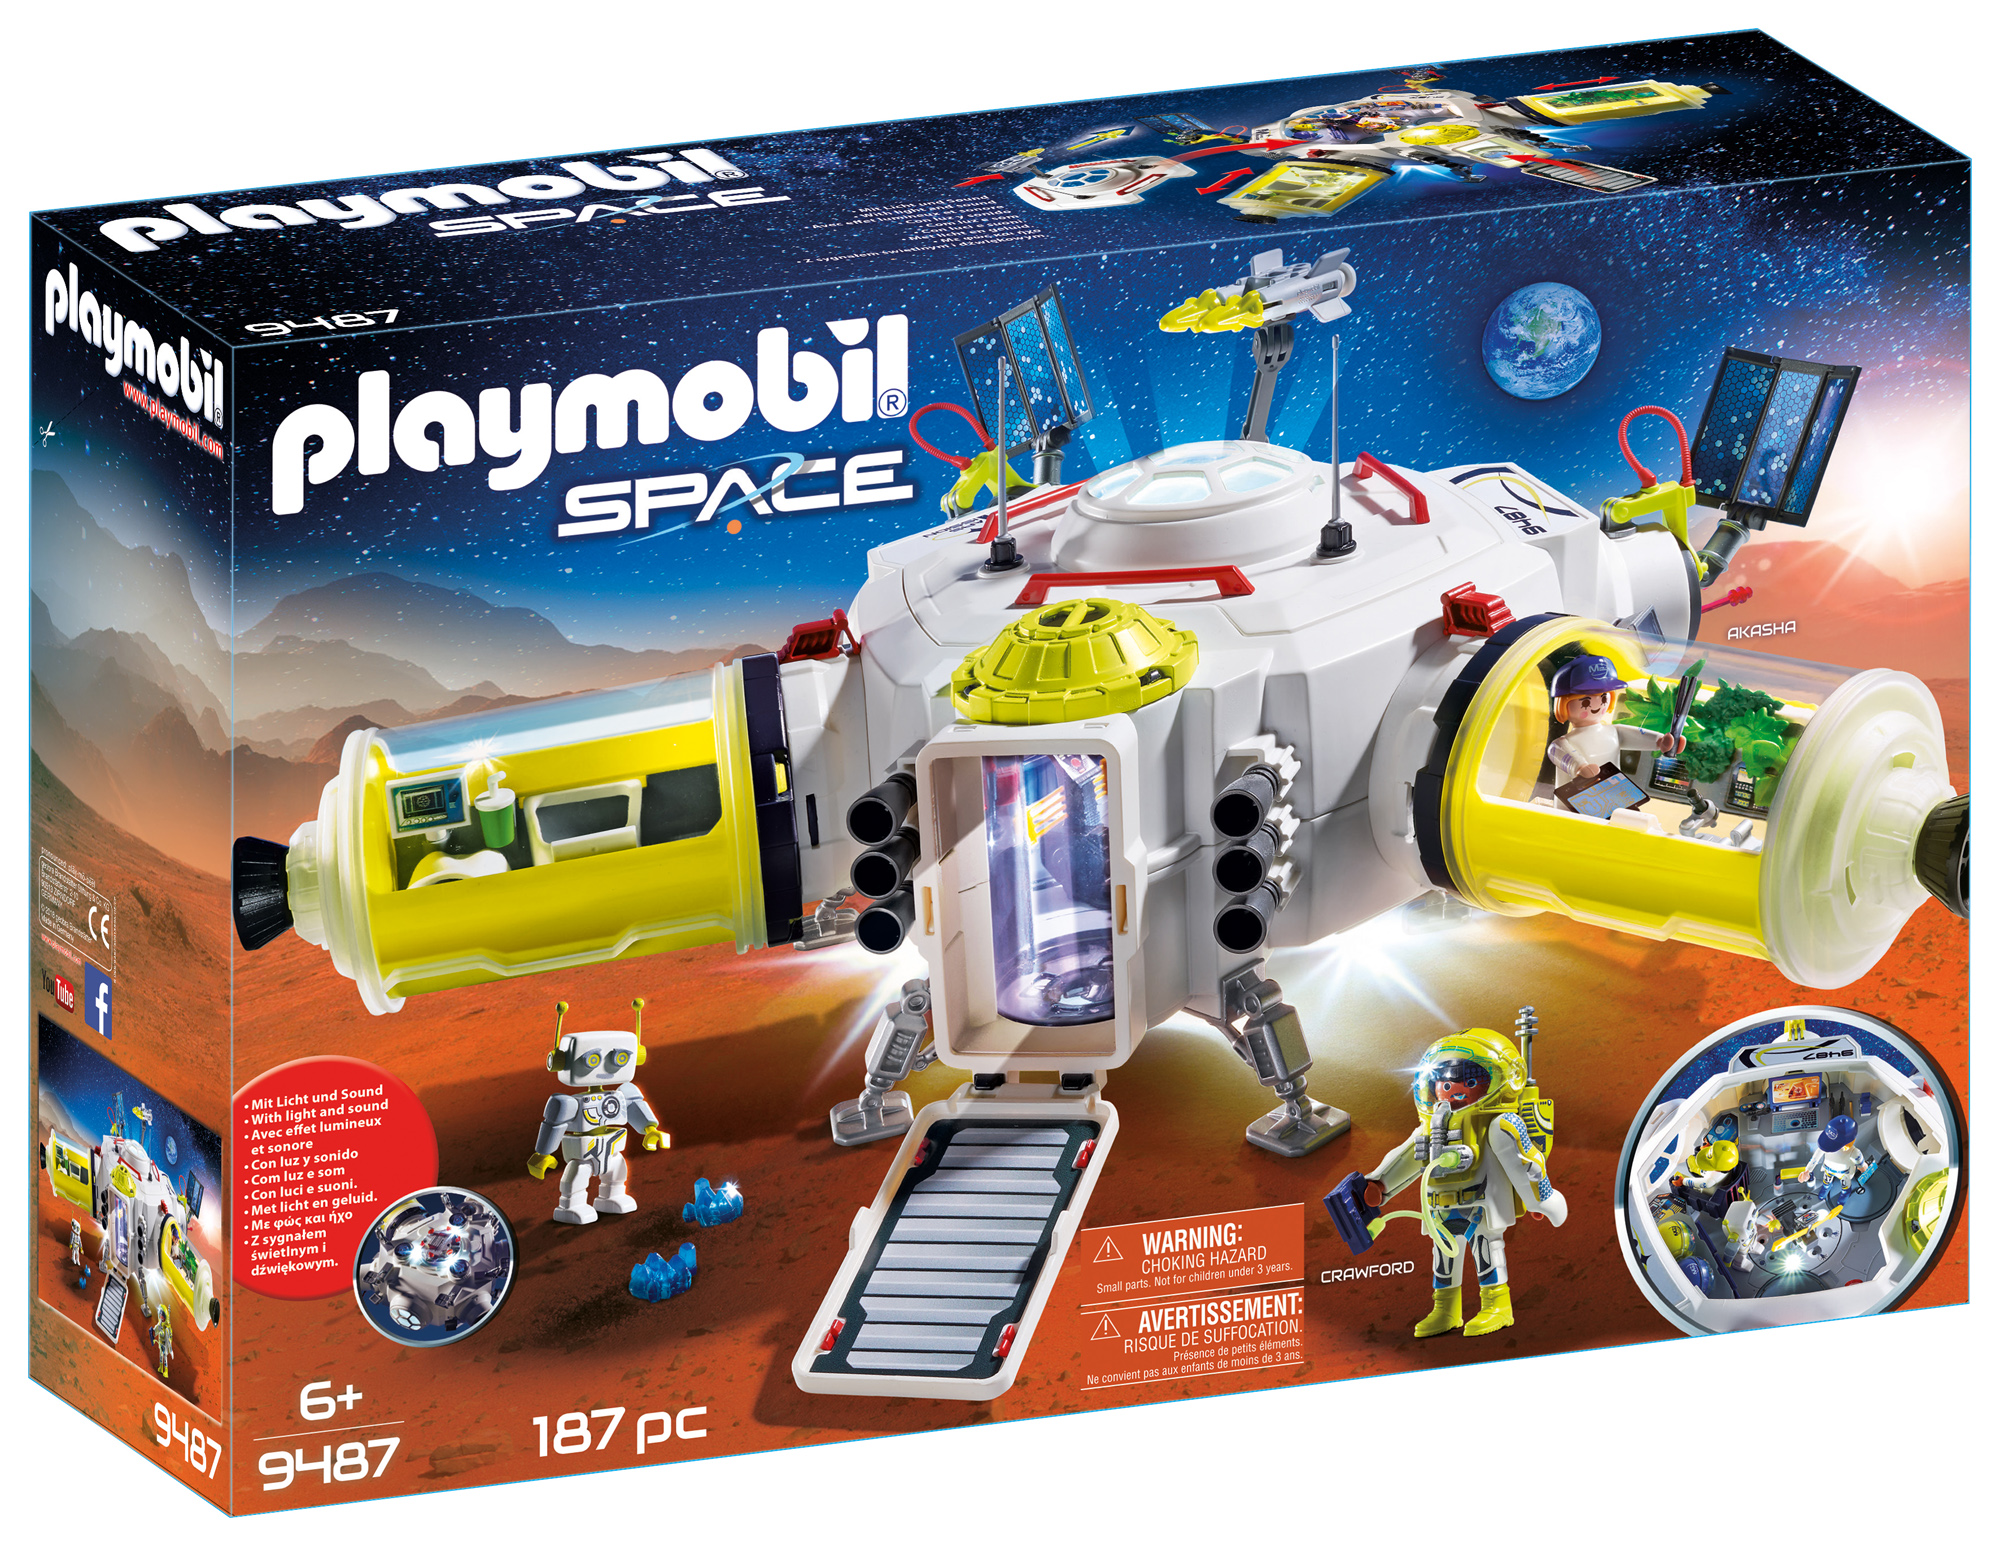 Playmobil Halloween Quick.Playmobil Mars Space Station Walmart Com